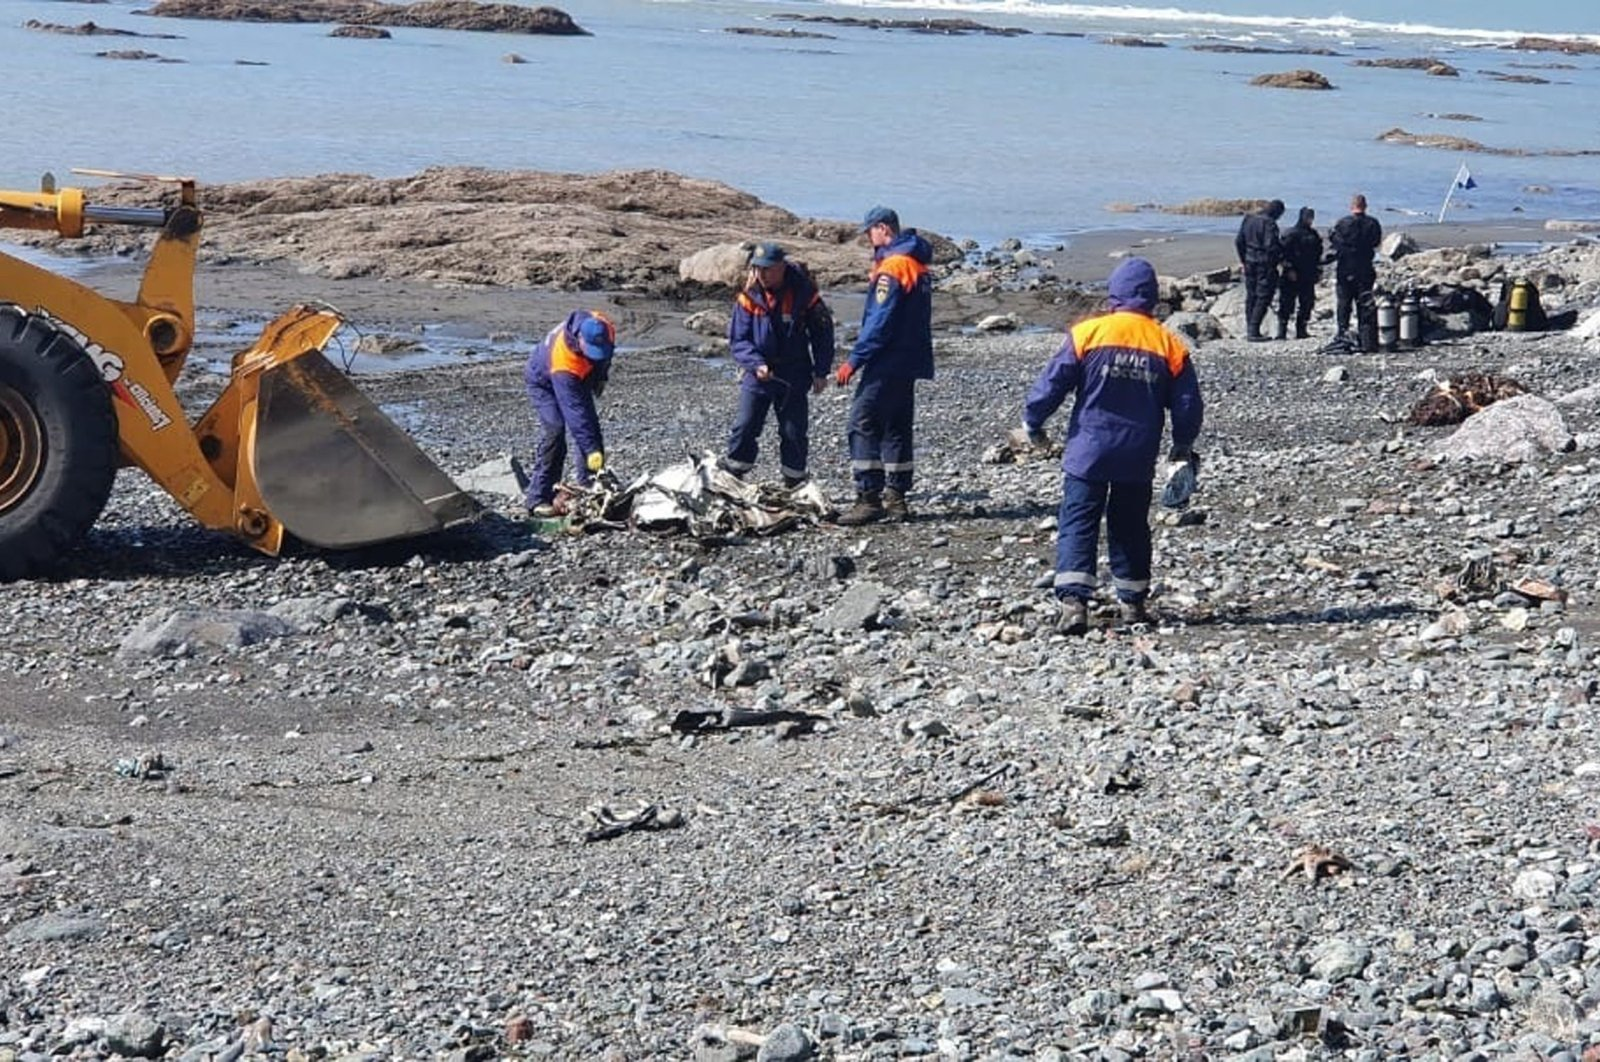 Emergency workers take part in the rescue operation at the spot where a Mi-8 helicopter crash-landed into Kuril Lake in the Kronotsky nature reserve on the Kamchatka peninsula, outside Petropavlovsk-Kamchatsky, Russia, Aug. 12, 2021. (Russian Emergency Situation Ministry via Reuters)